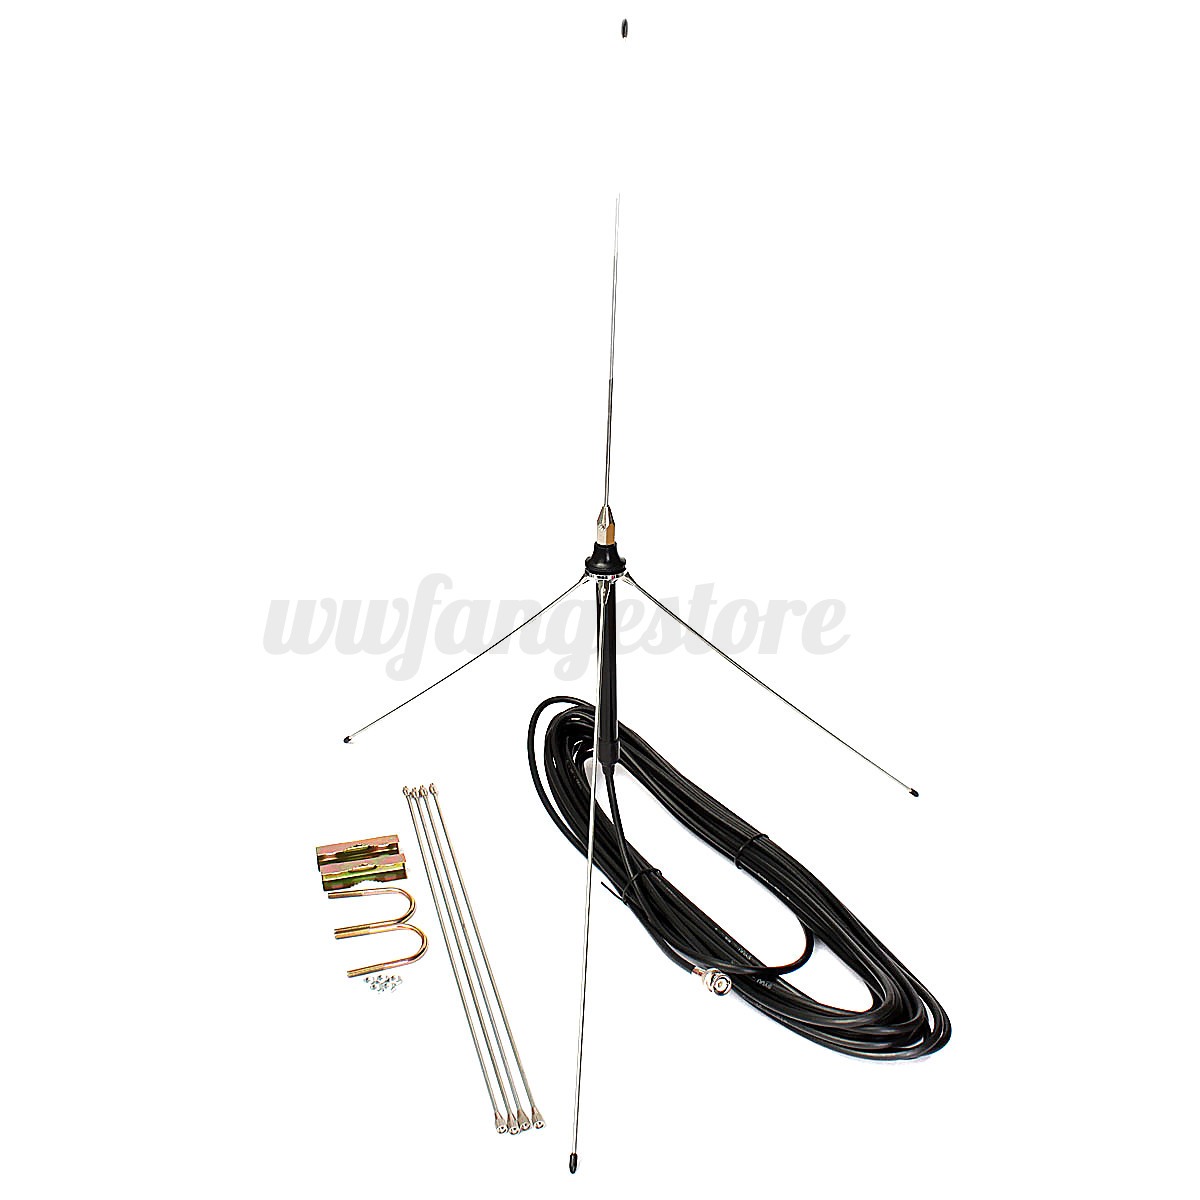 15m Cable Powerful 1 4 Wavelength Gp Antenna Set For 0 5